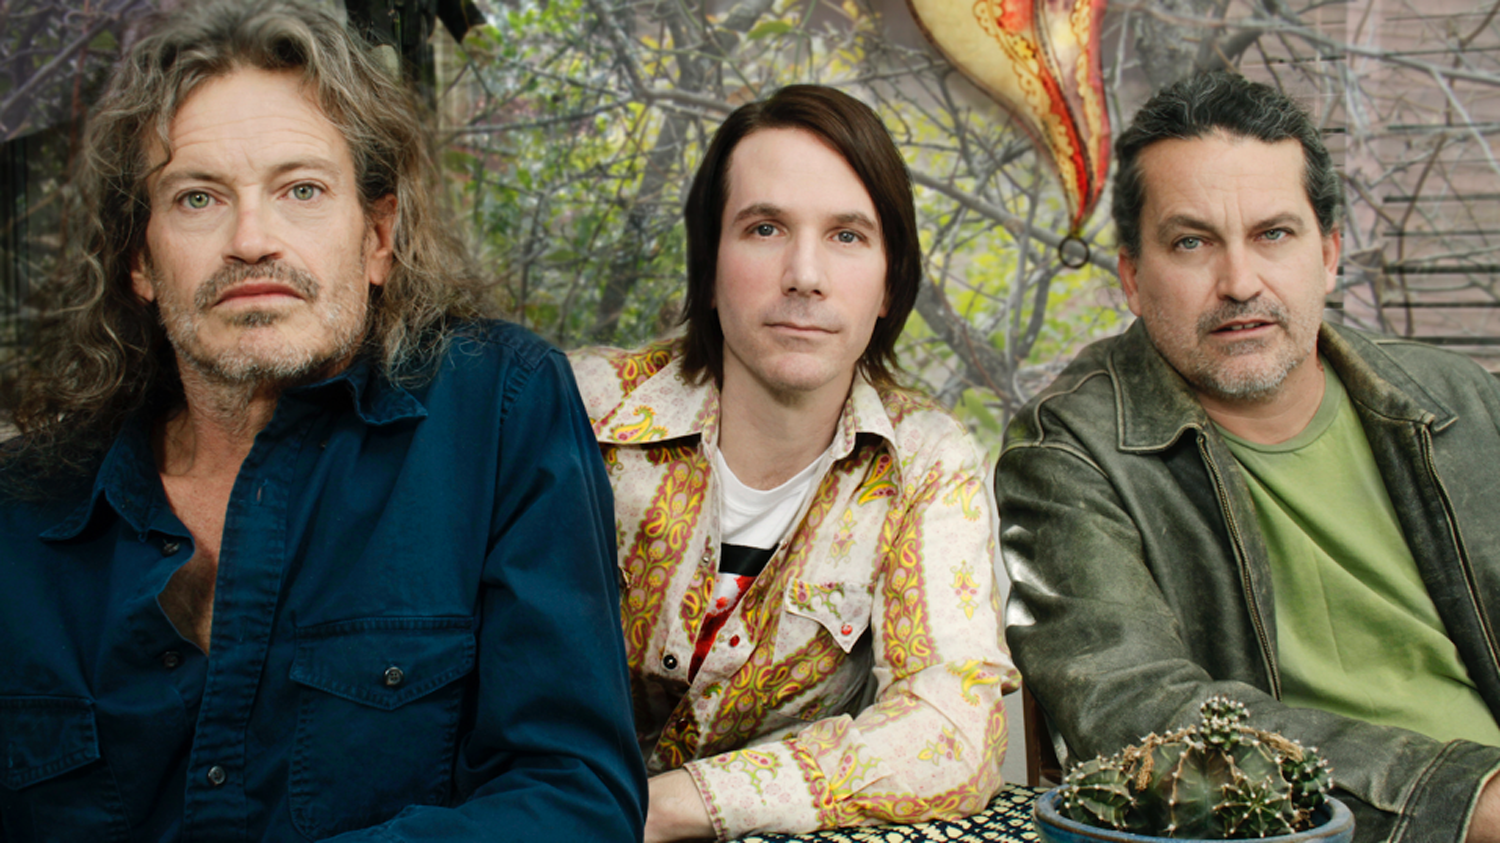 Meat_Puppets.png